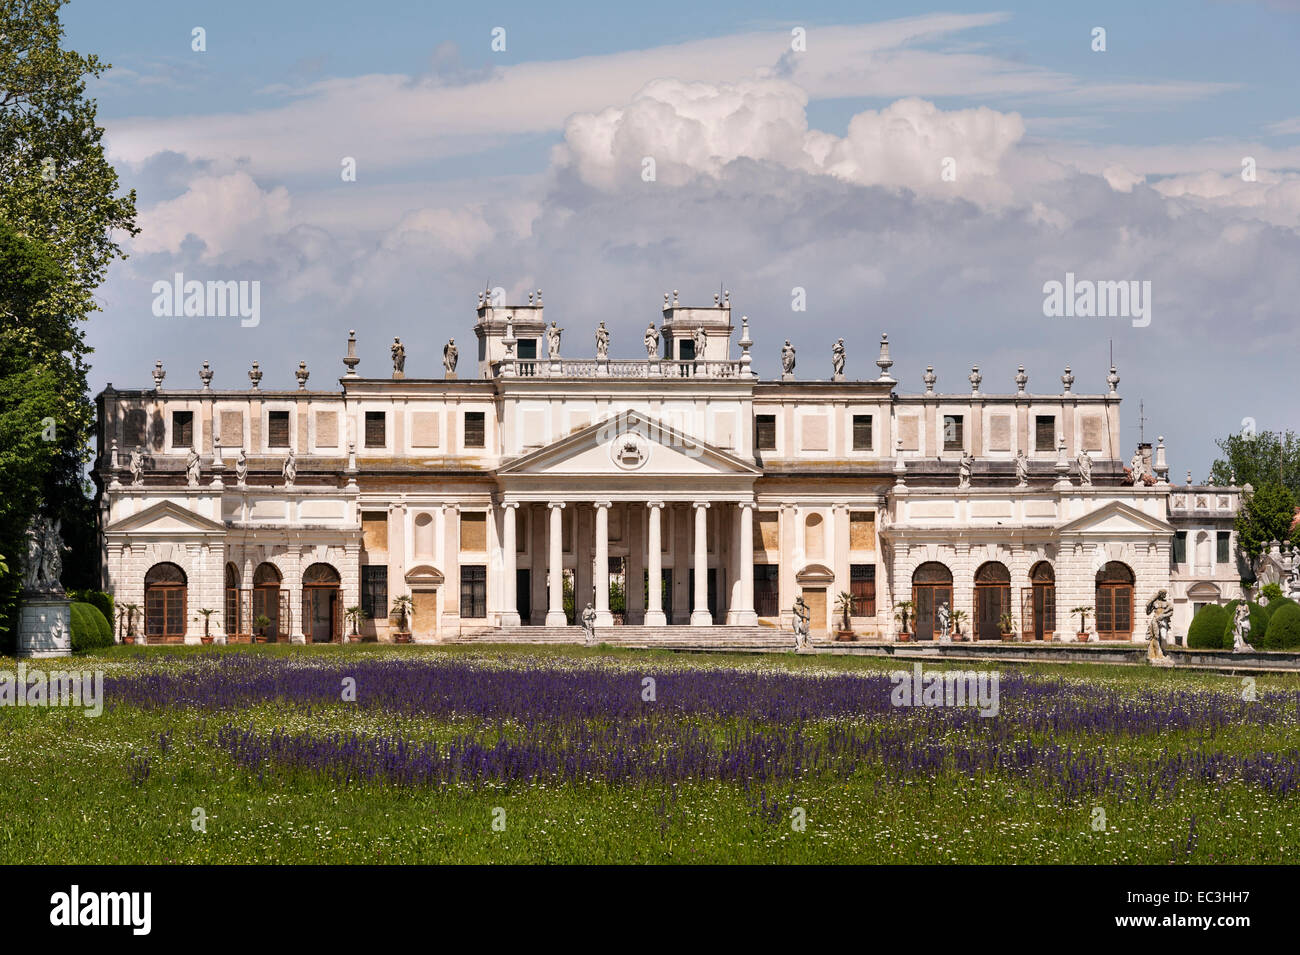 Villa Pisani, Stra, Italy. The pavilion and stables at the far end of the canal, built in the 1740's by Girolamo - Stock Image